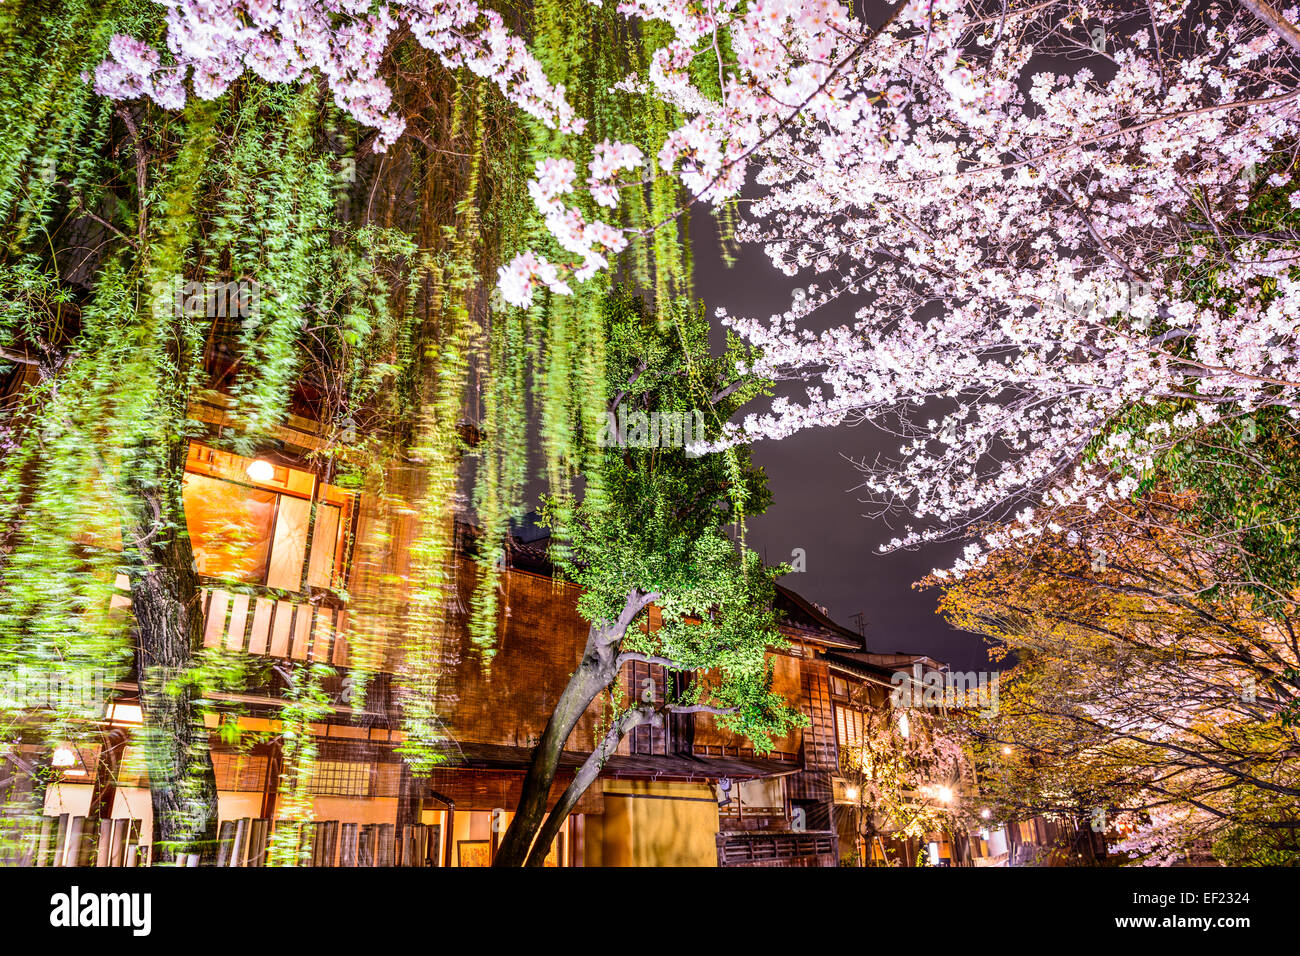 Spring foliage in Kyoto, Japan at night. - Stock Image